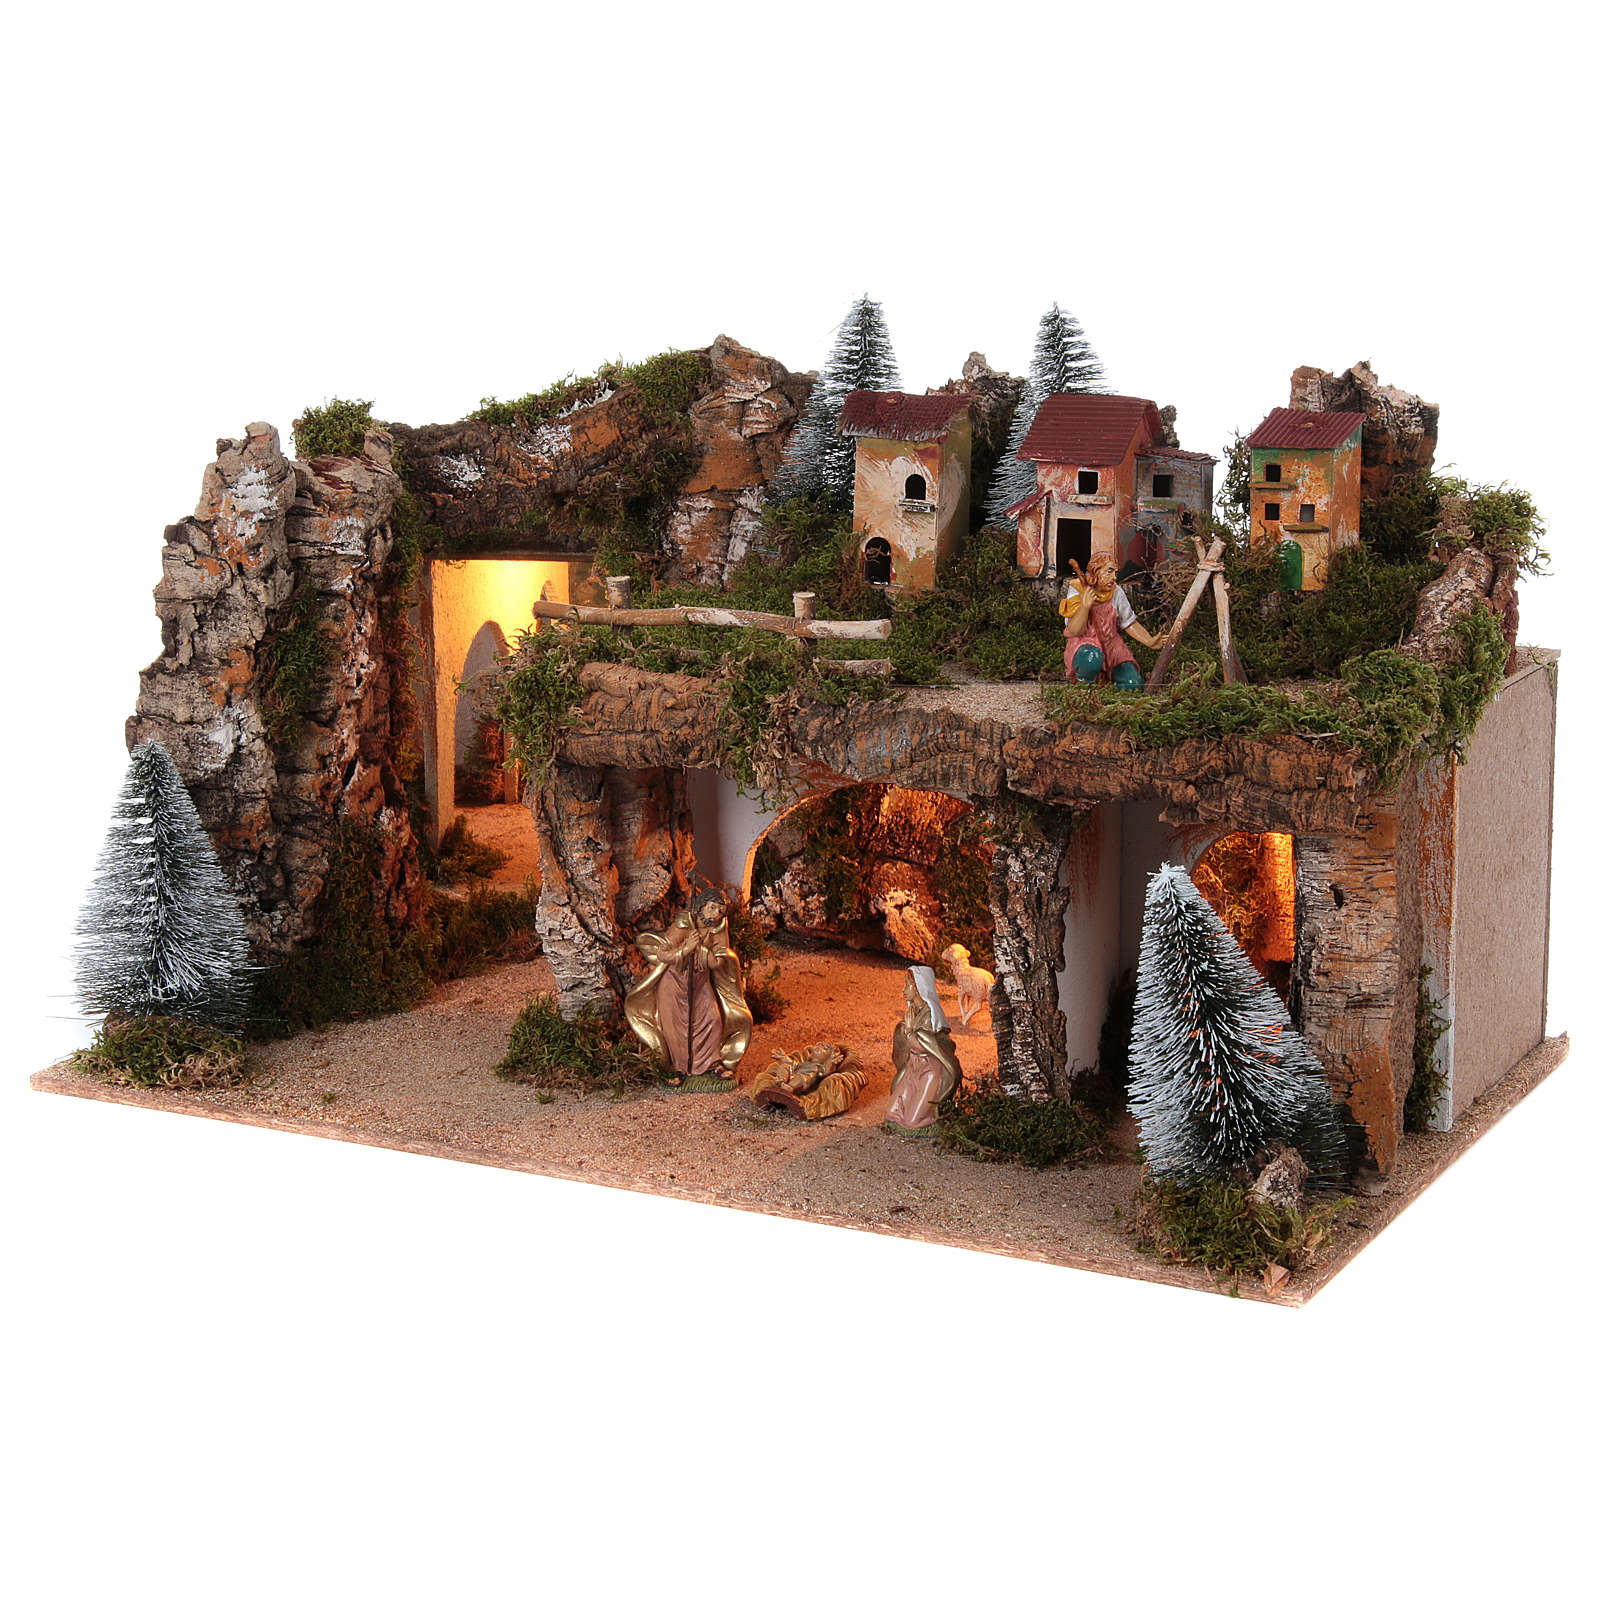 Landscape with lights and Nativity Scene 12 cm 8 pieces 45x80x50 cm 4